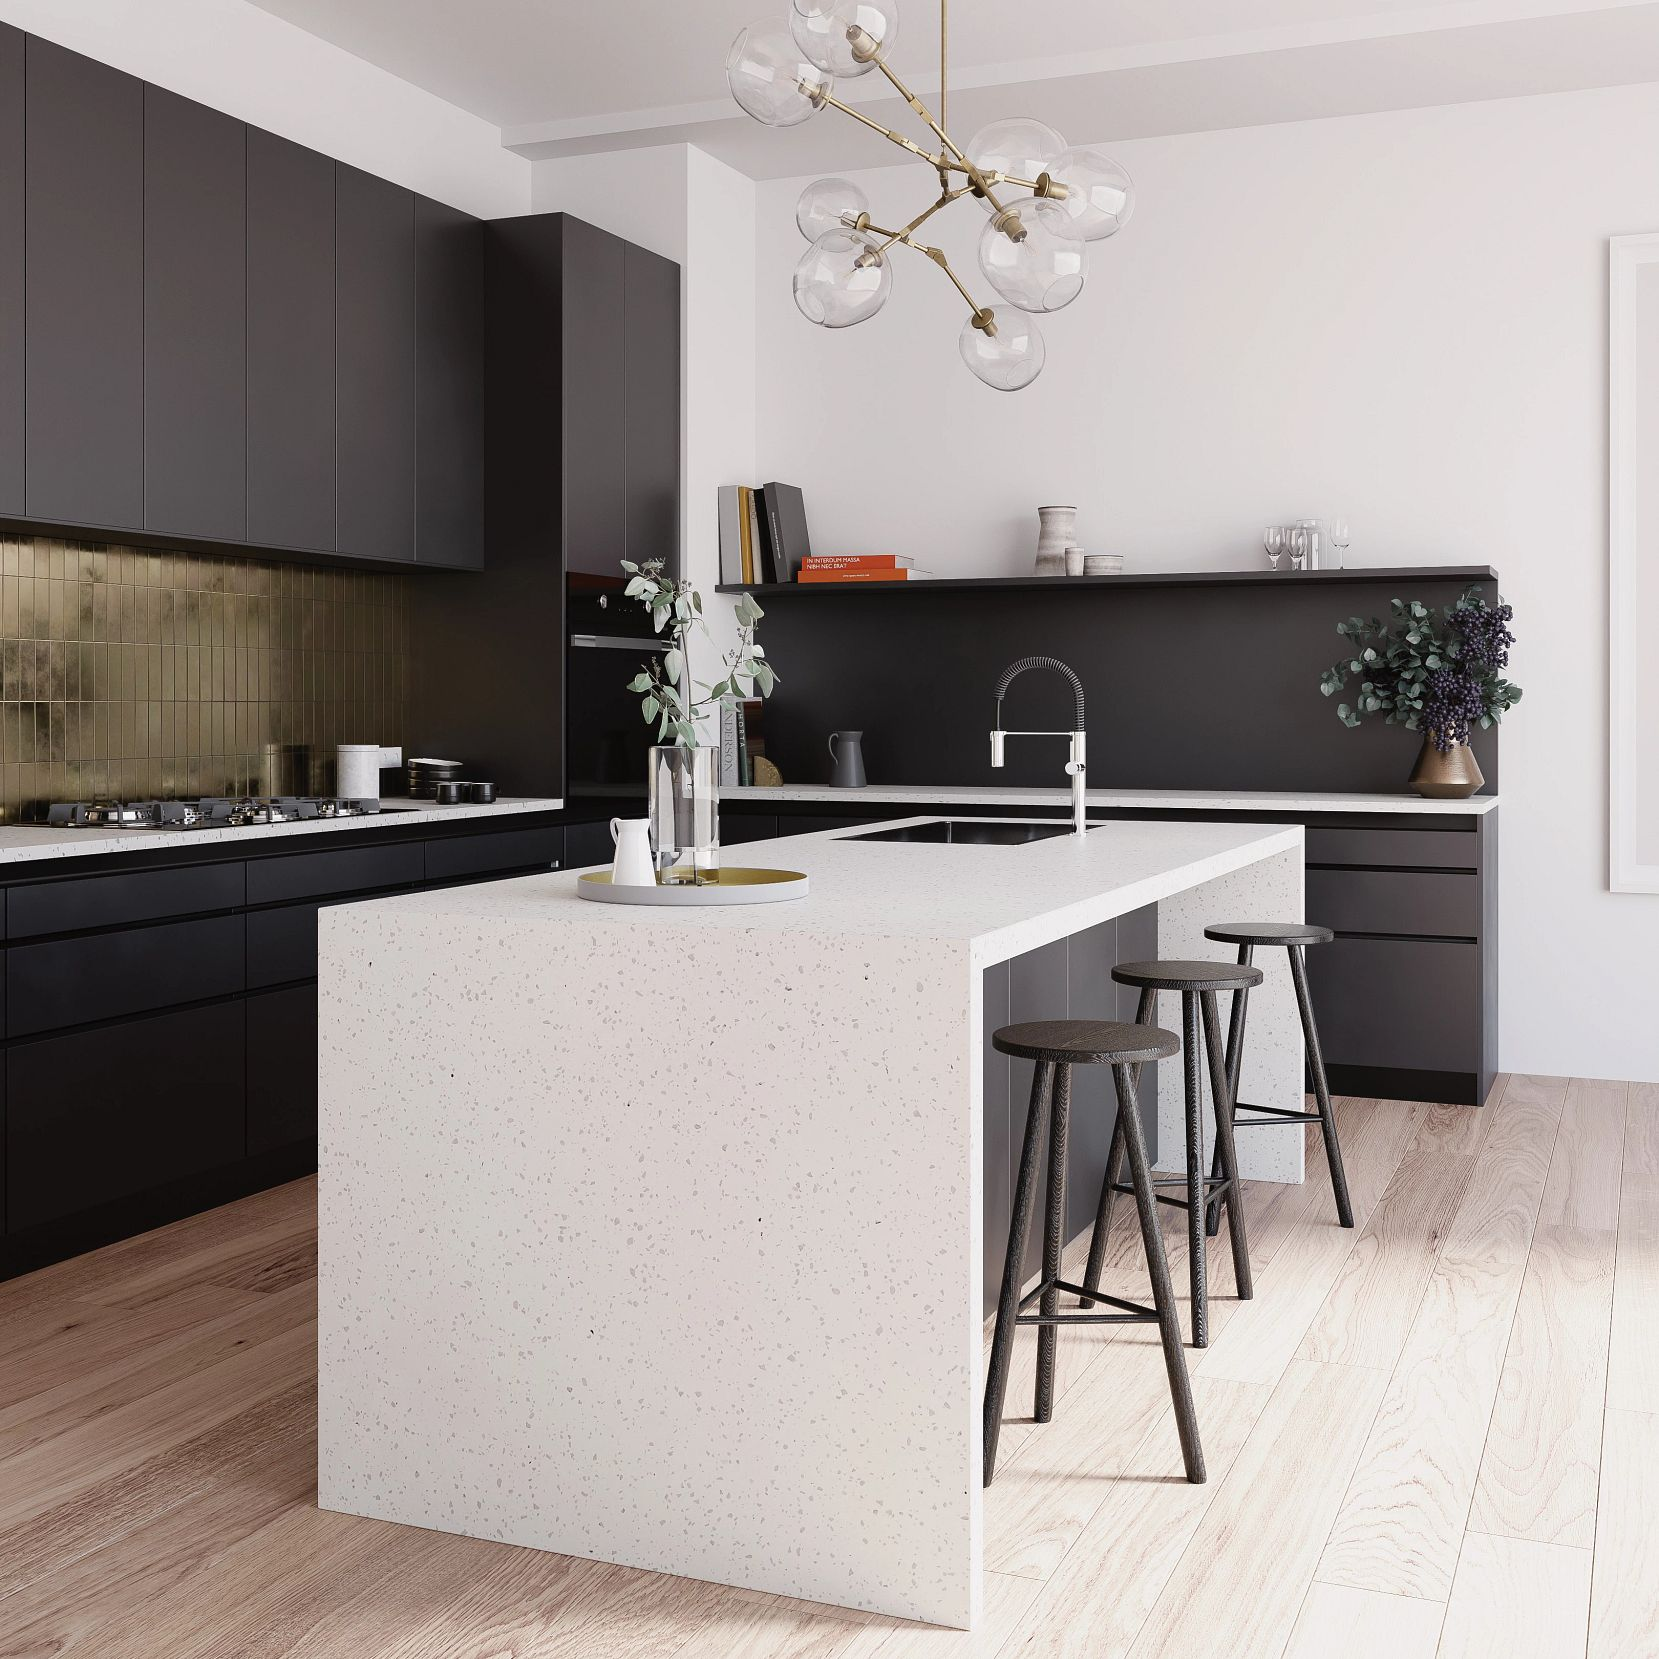 A picture containing floor, indoor, wall, kitchen  Description automatically generated